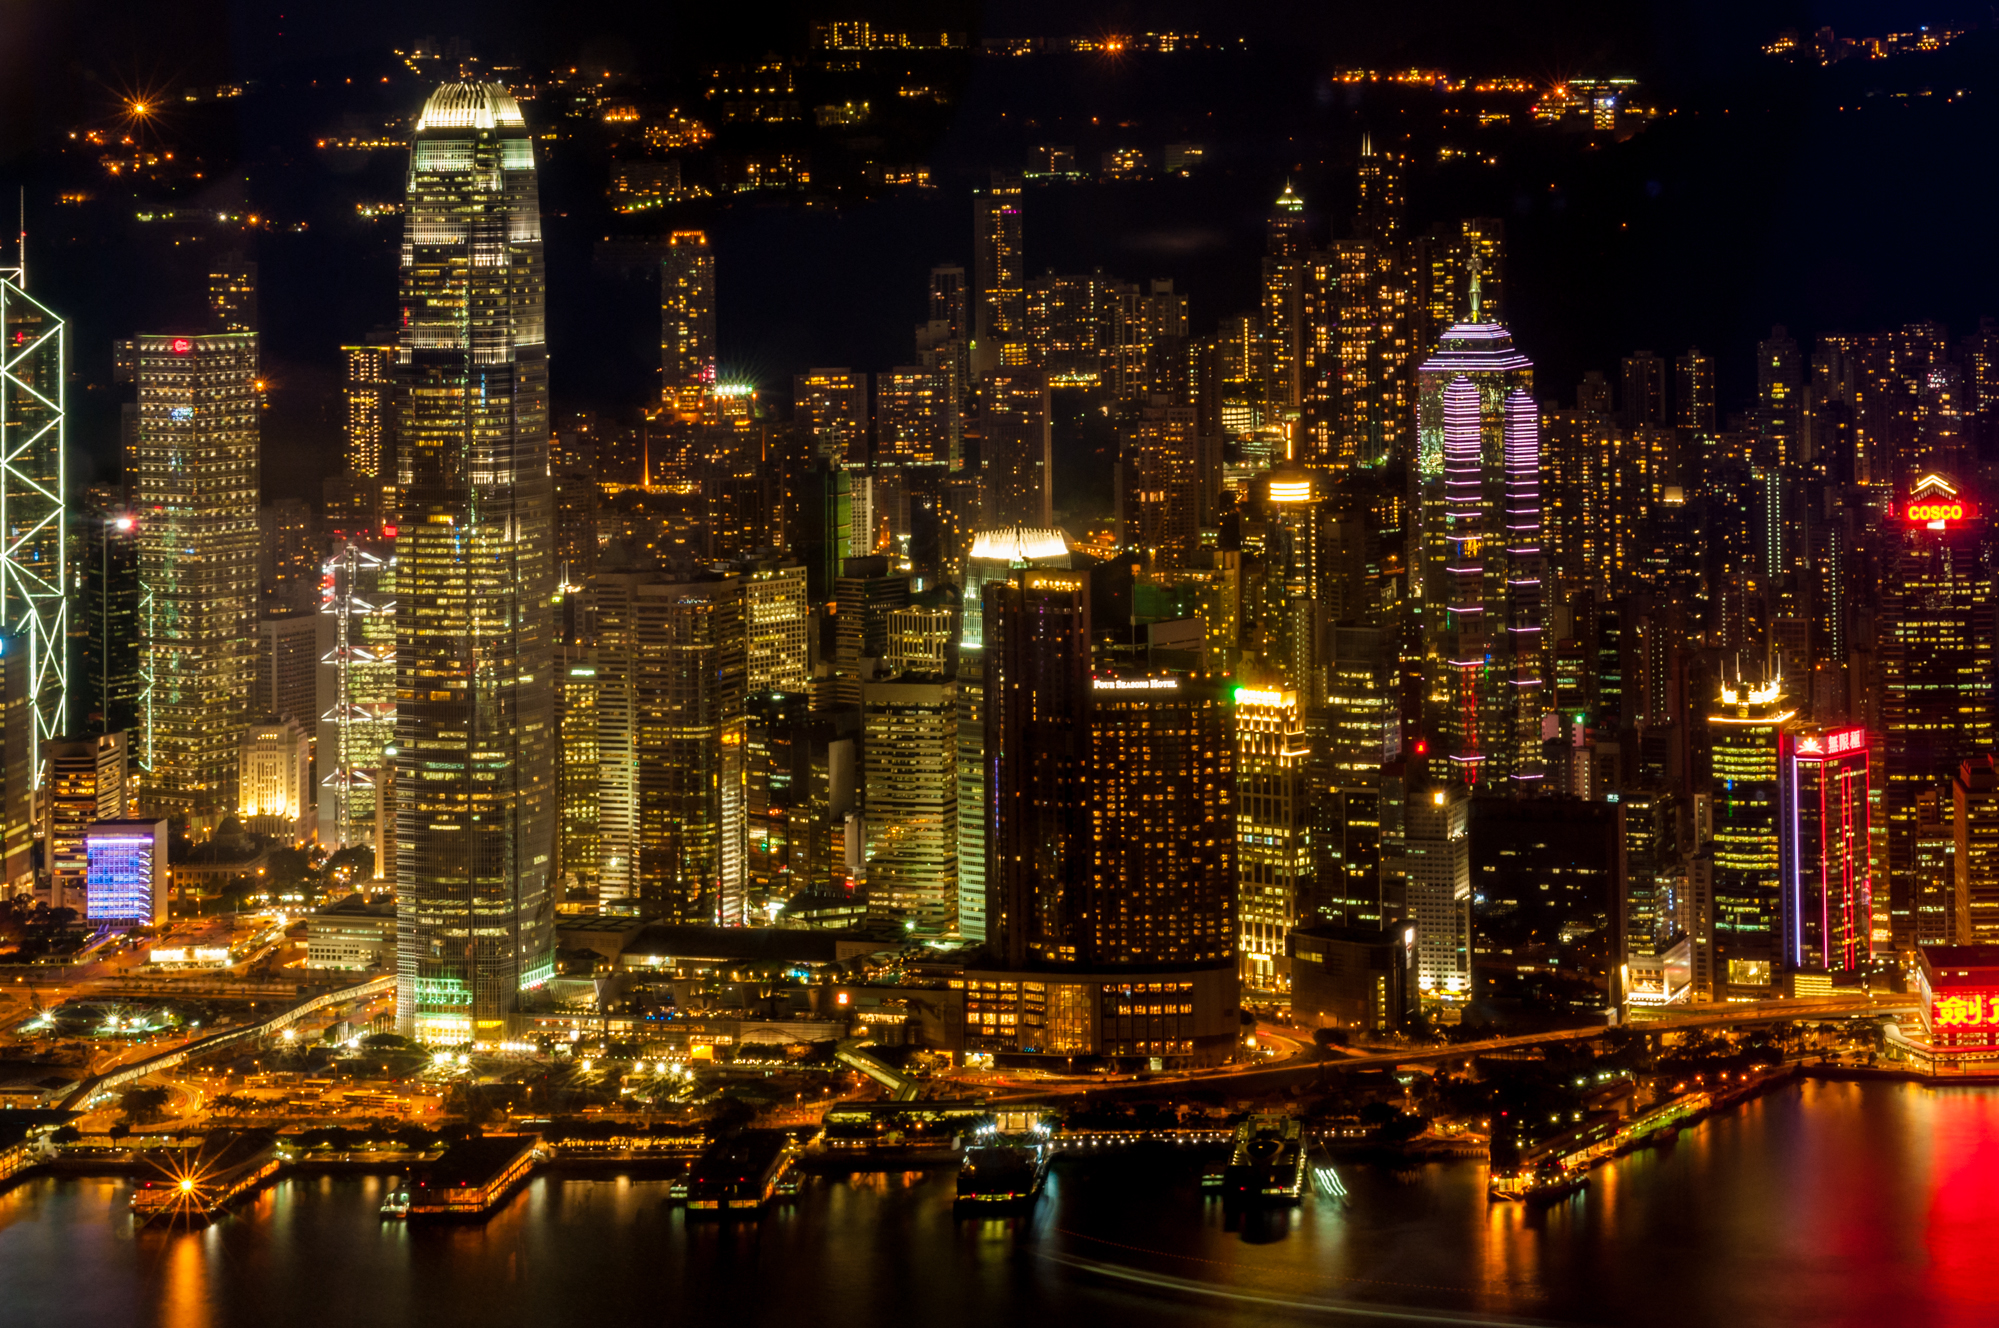 Free download high resolution image - free image free photo free stock image public domain picture -Hong Kong skyline at night